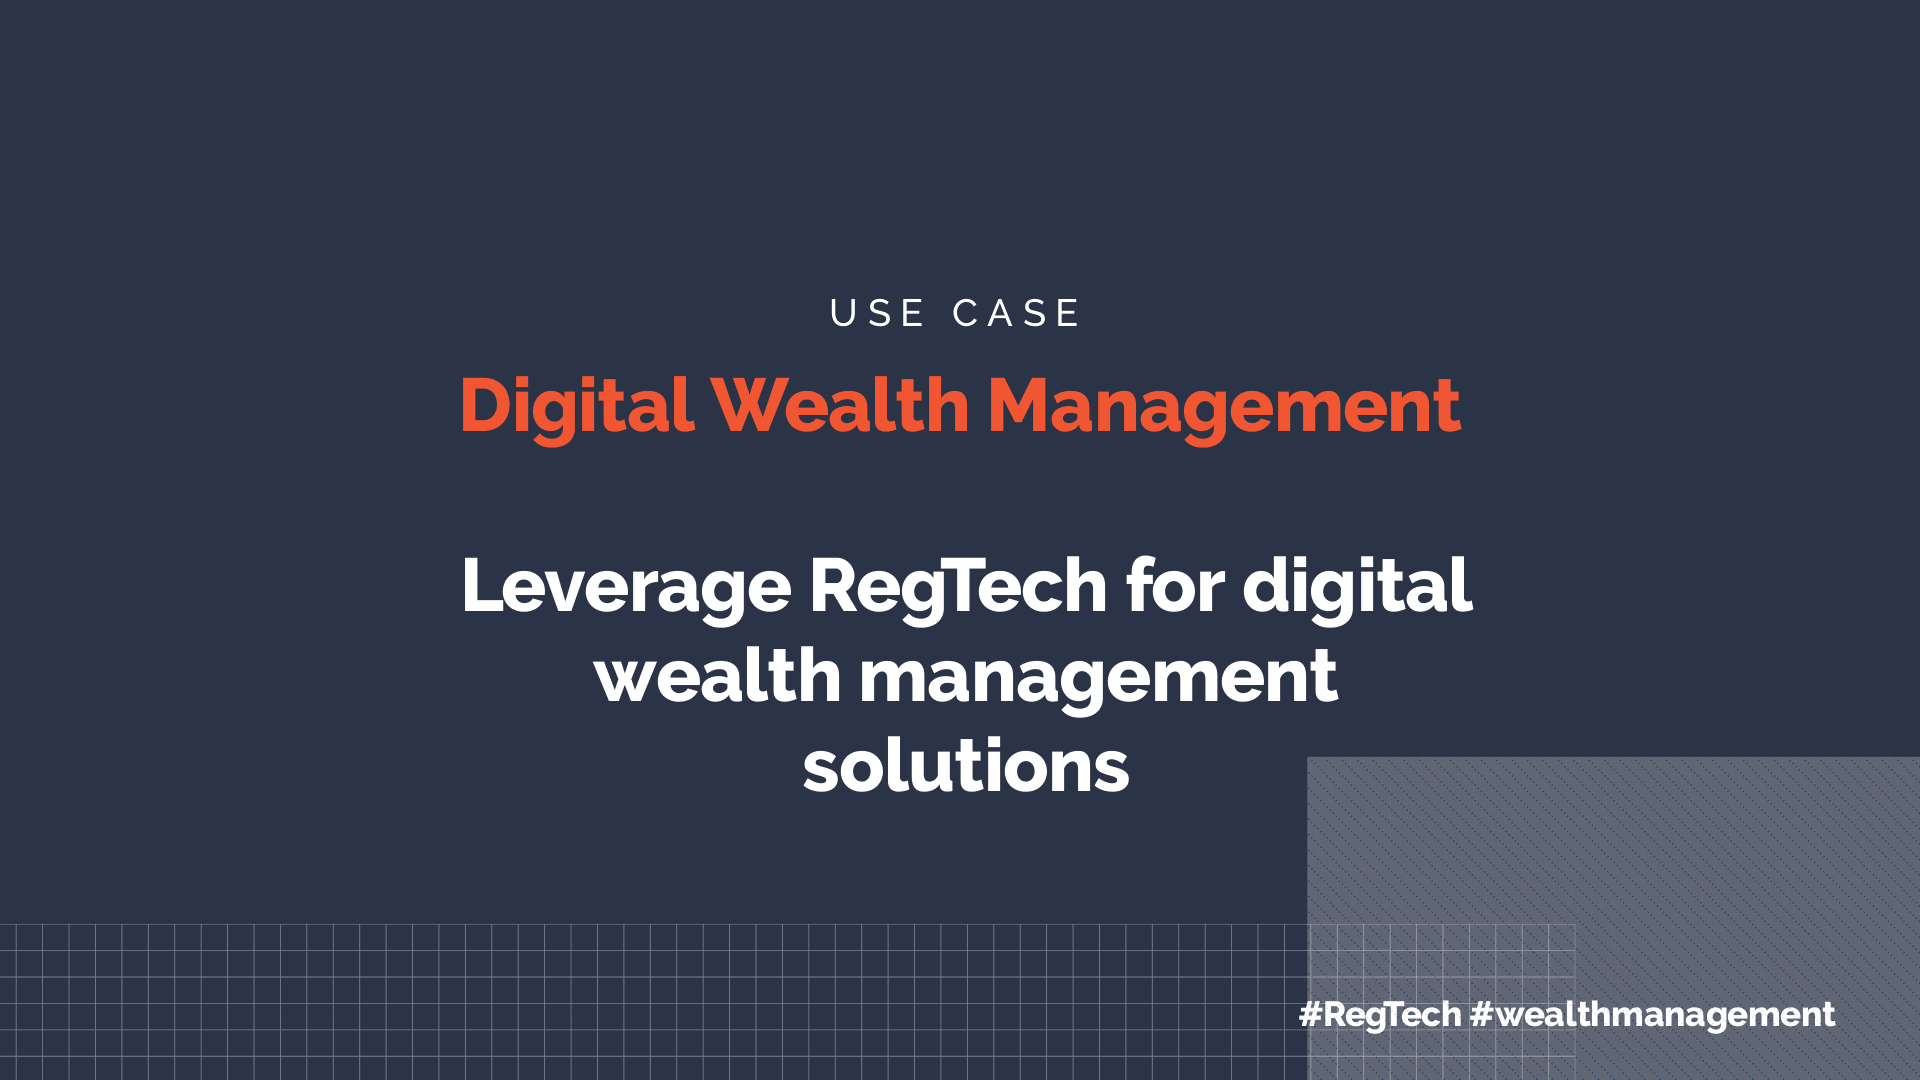 Digital Wealth Management